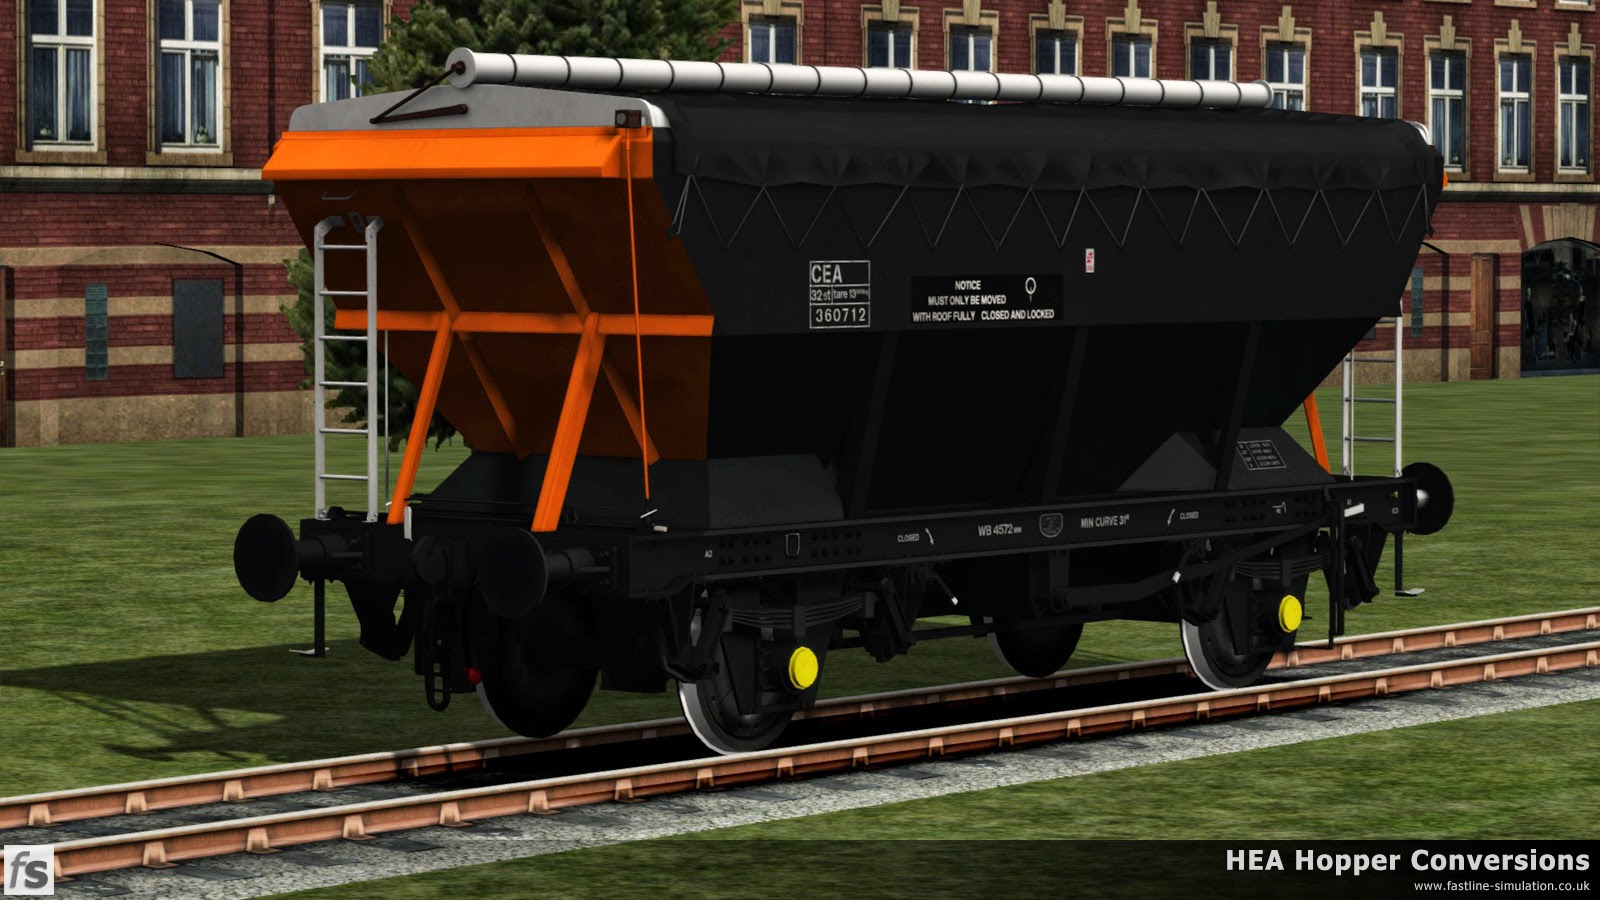 Fastline Simulation - HEA Conversions: The Loadhaul liveried CEA has made it's way back into the paintshop and after application of lettering, poses for the official photographer.